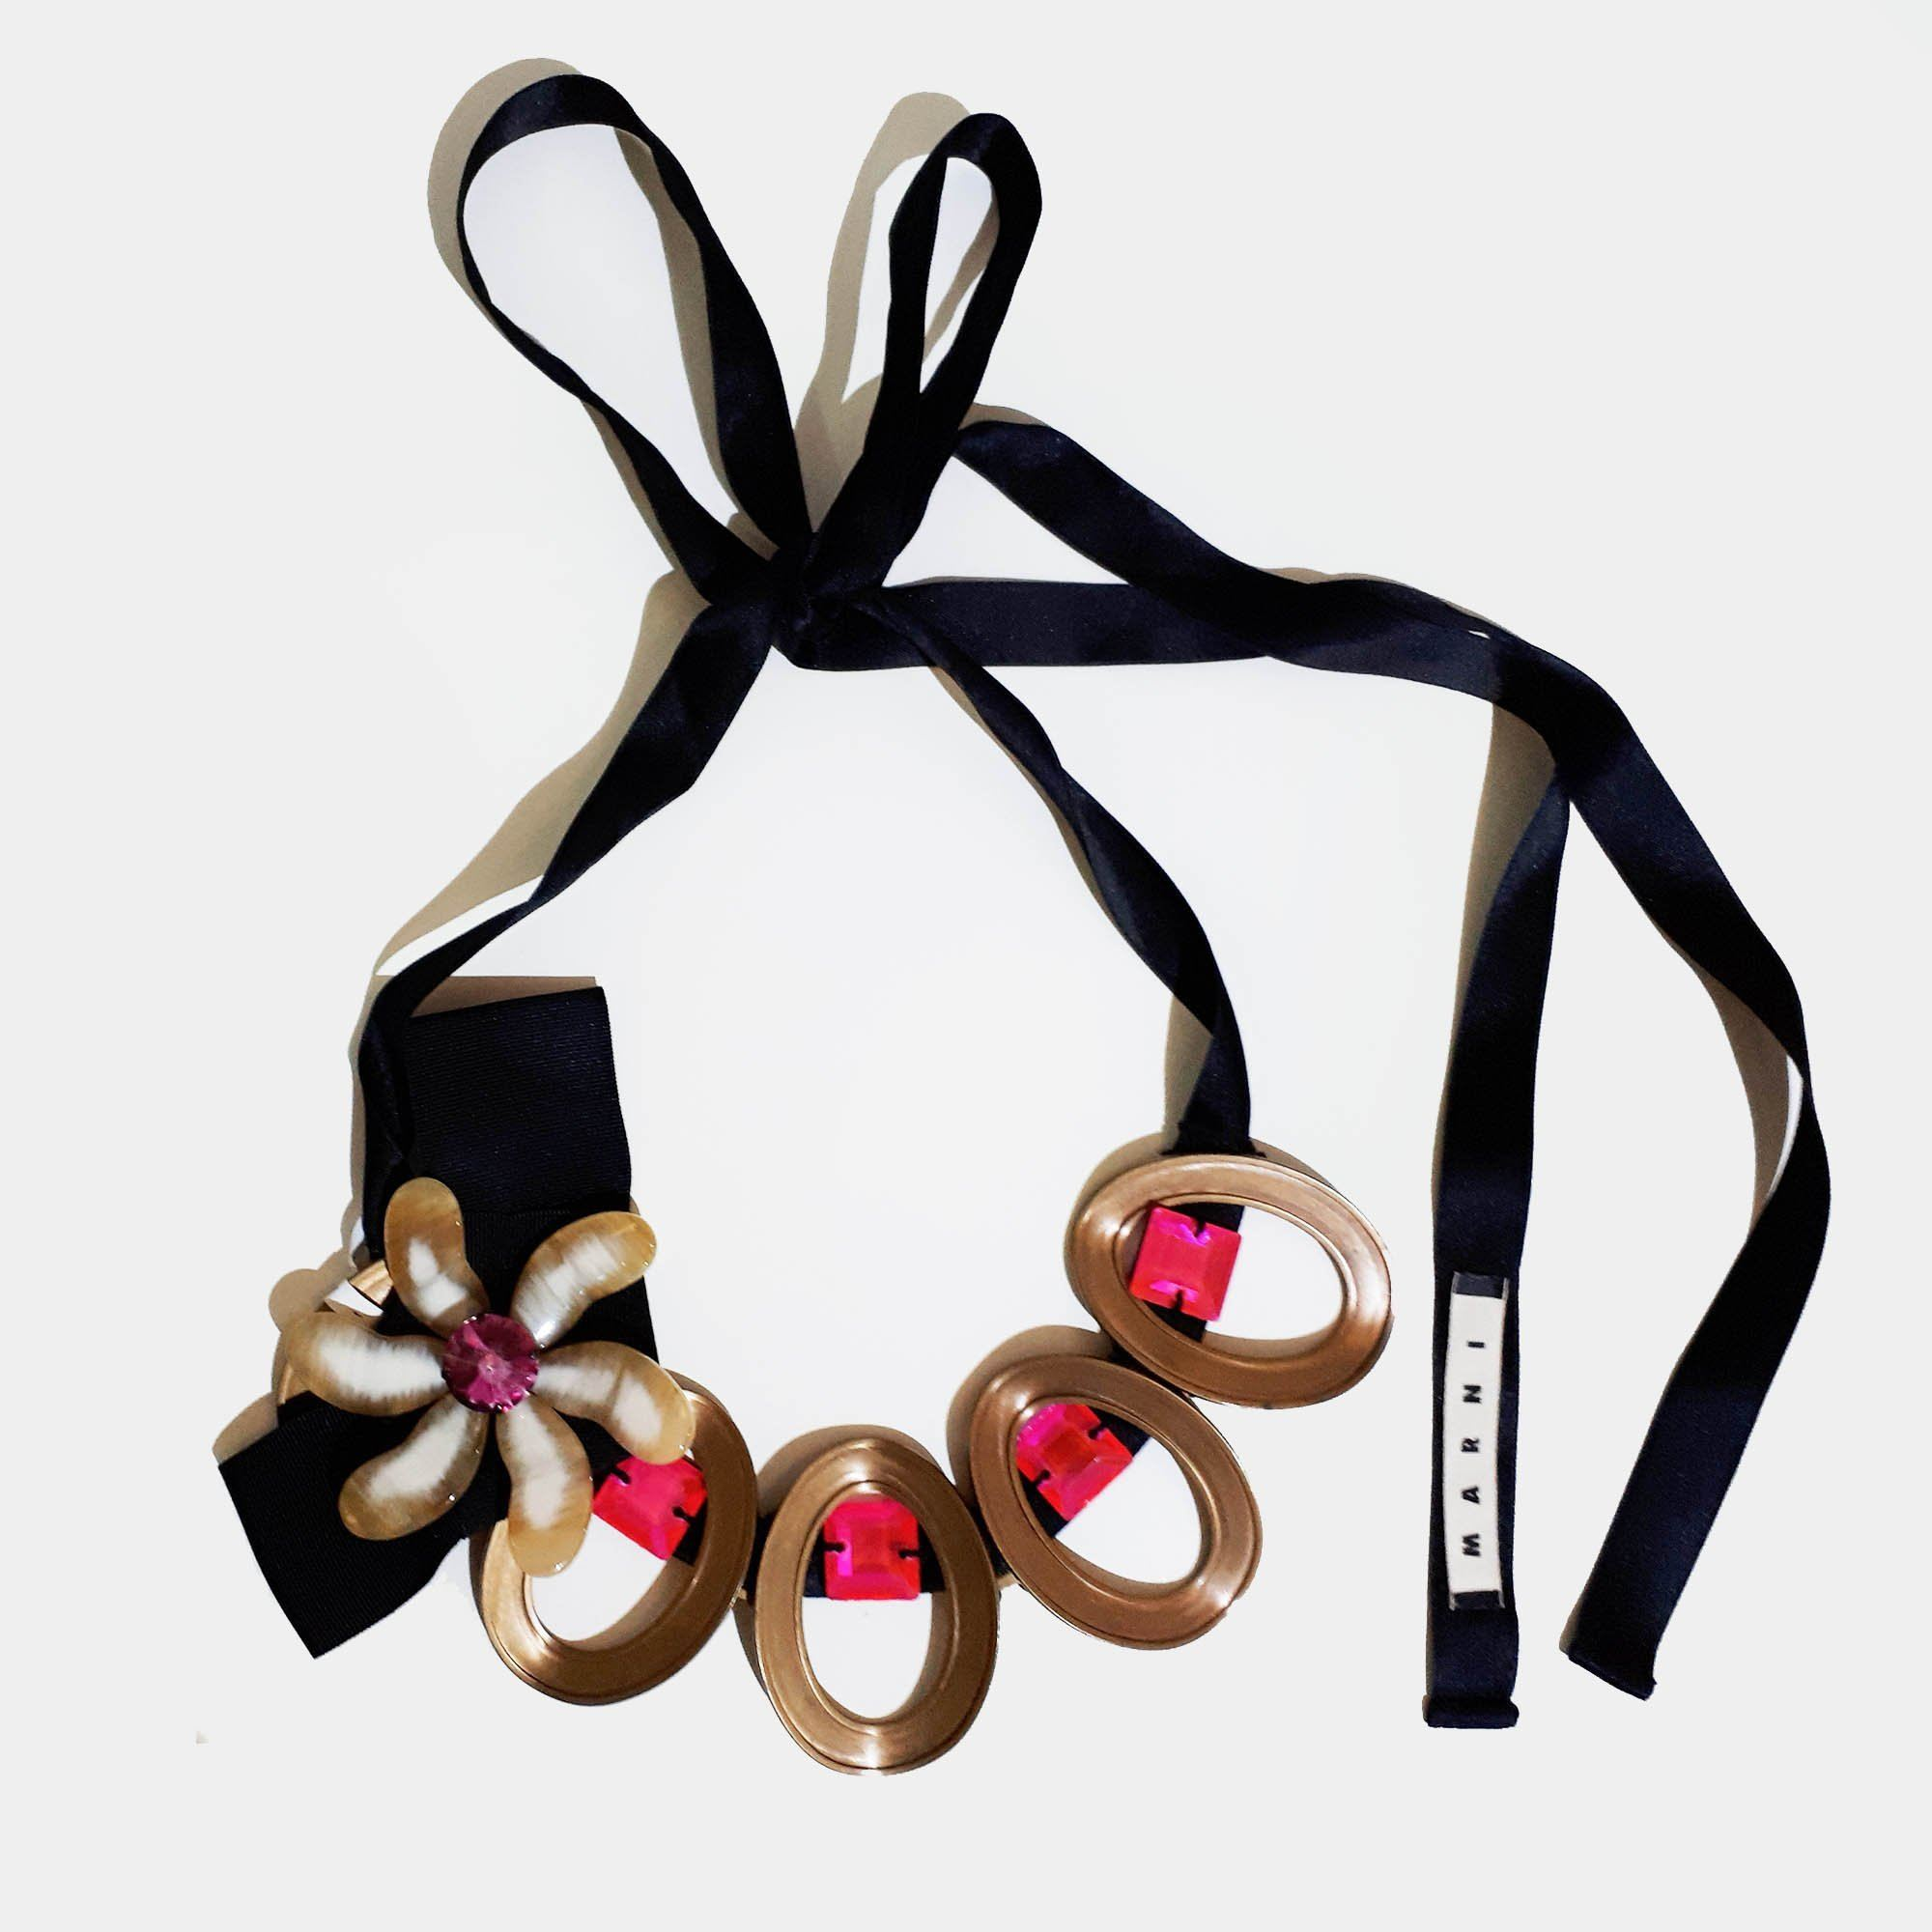 Marni Bronze and Pink Necklace with Black Lace